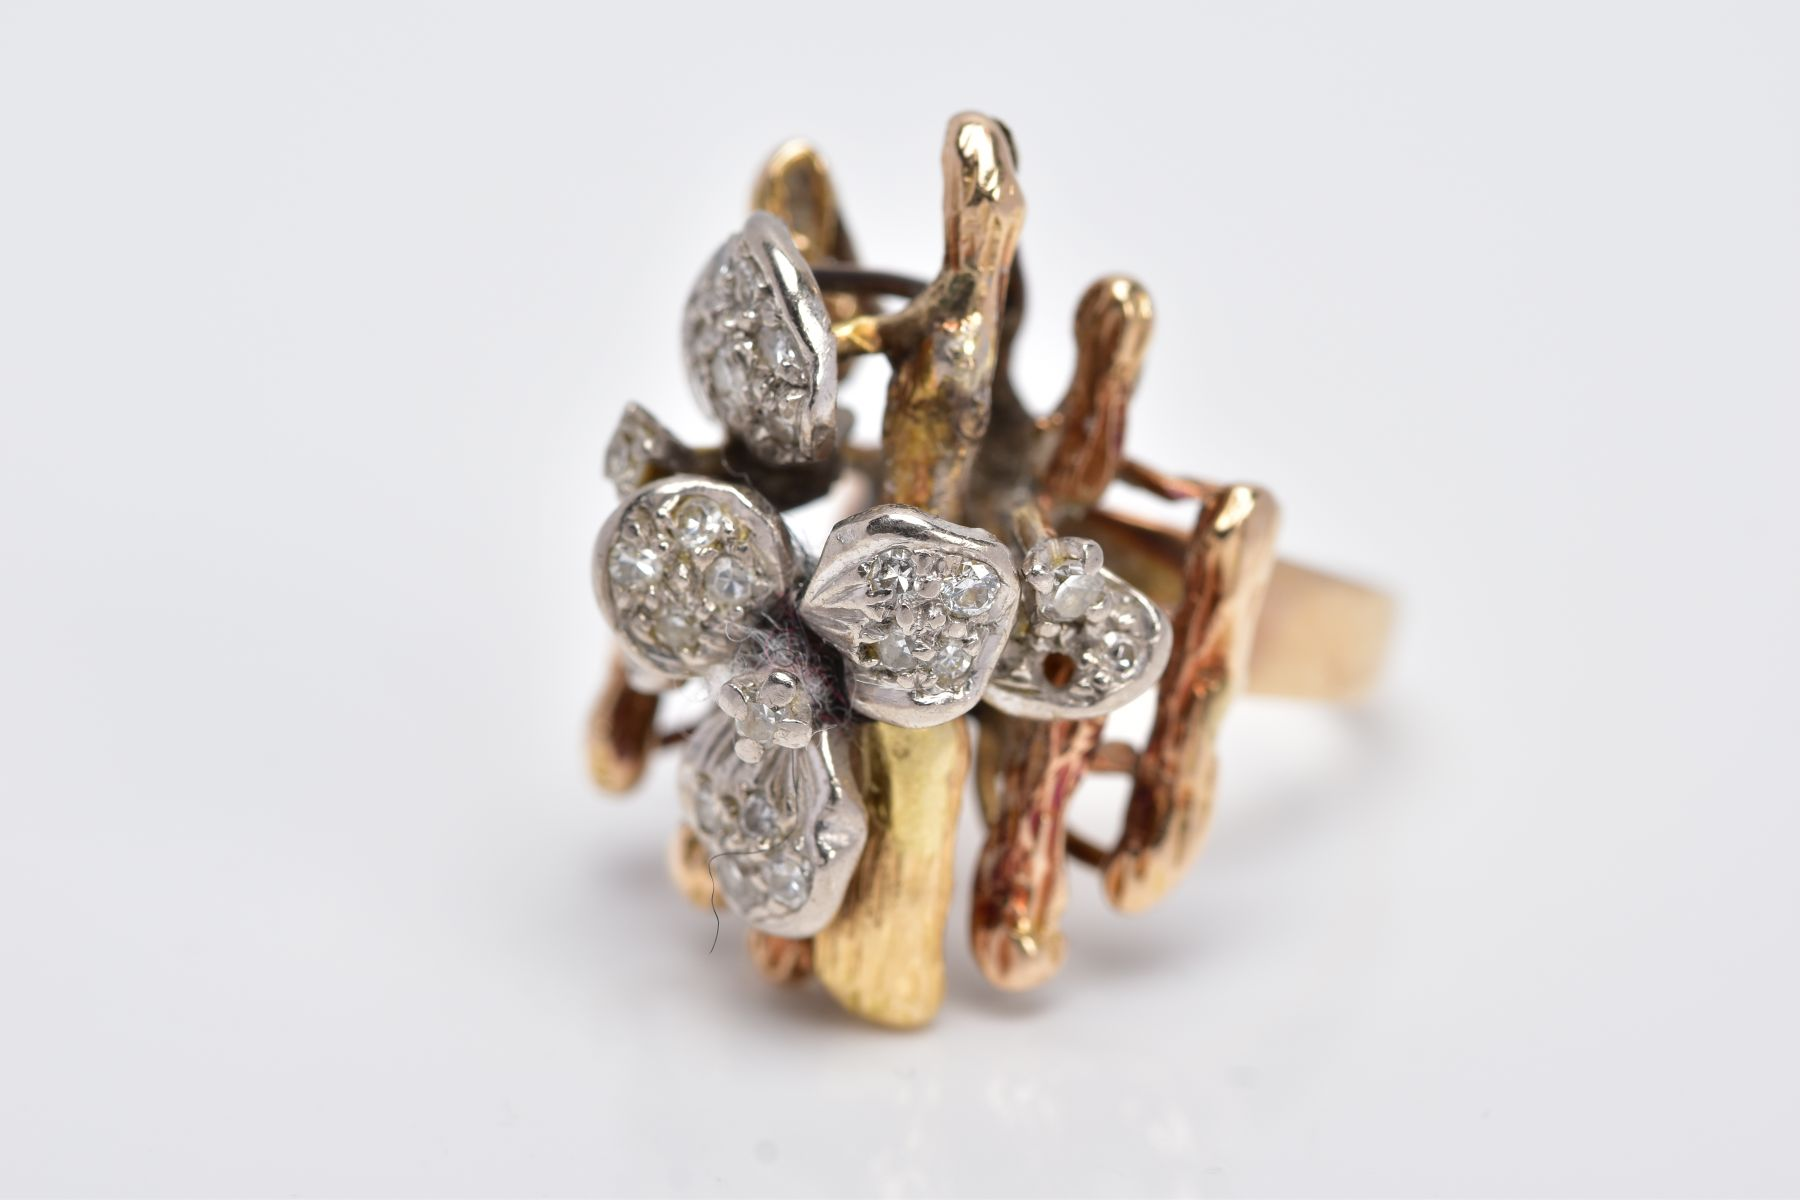 A YELLOW METAL DIAMOND SET RING, of a floral and bark textured design in the style of Andrew